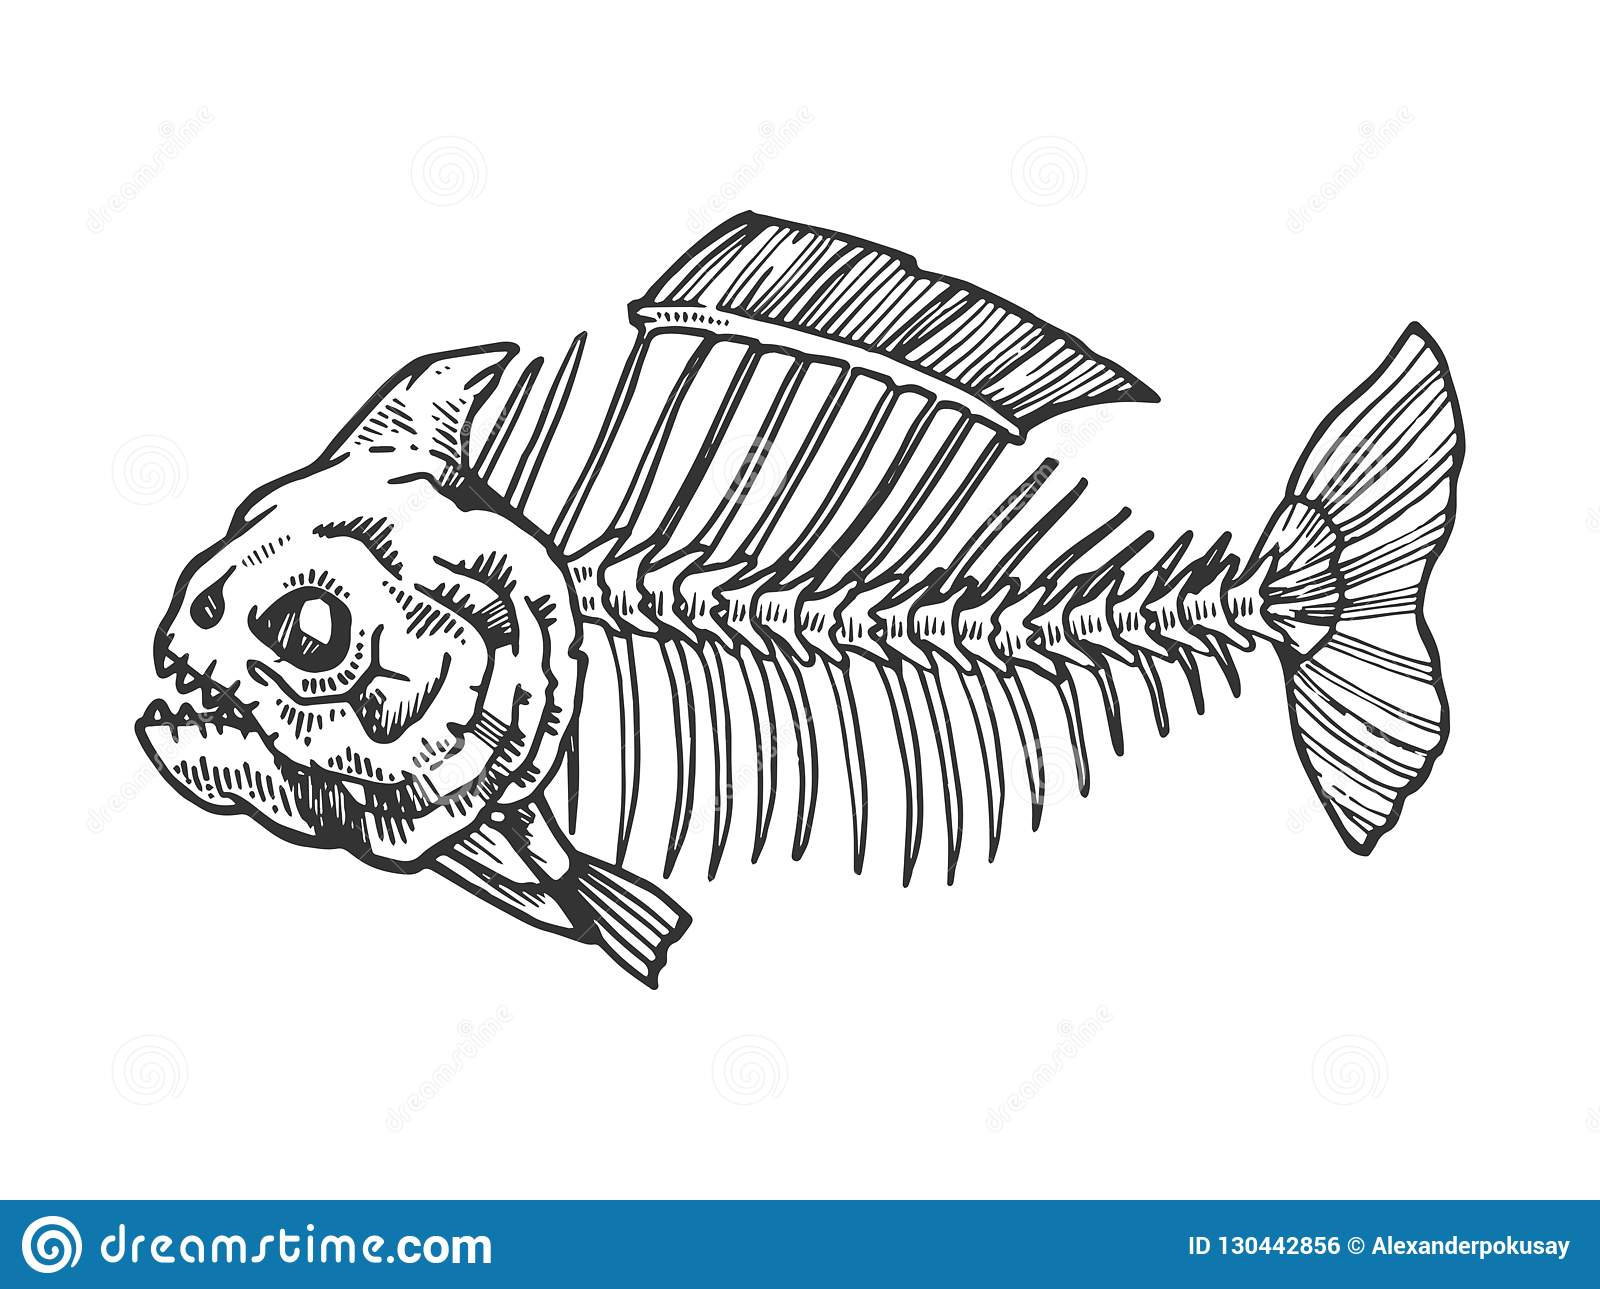 Piranha Fish Skeleton Engraving Vector Stock Vector Illustration